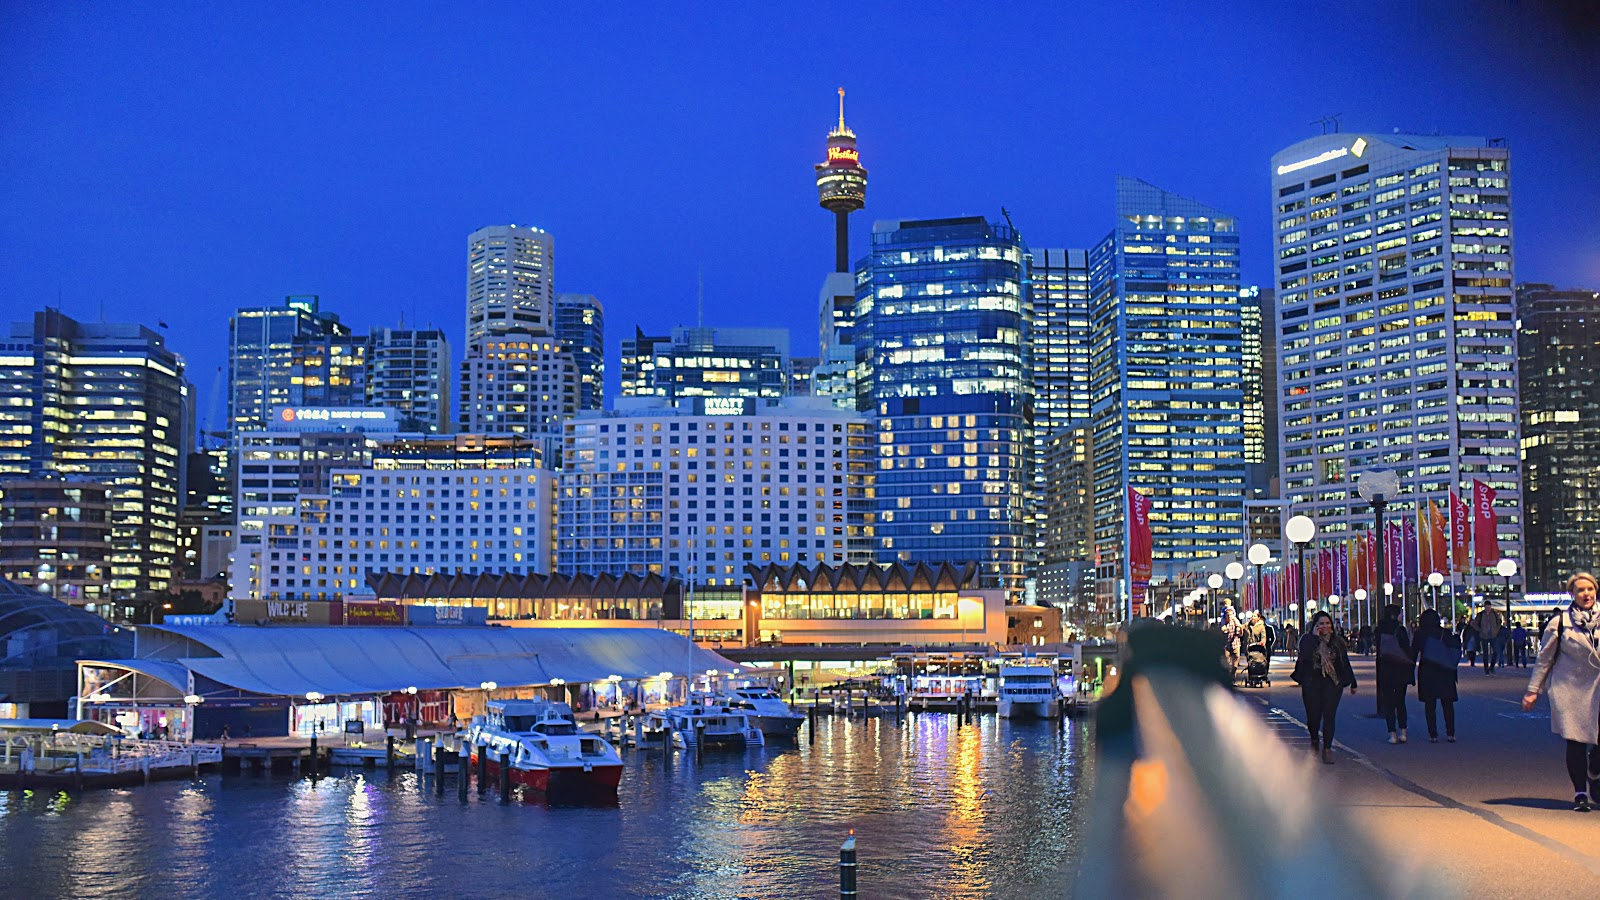 View of Darling Harbor at night. Packed with child-friendly activities that even adults find entertaining